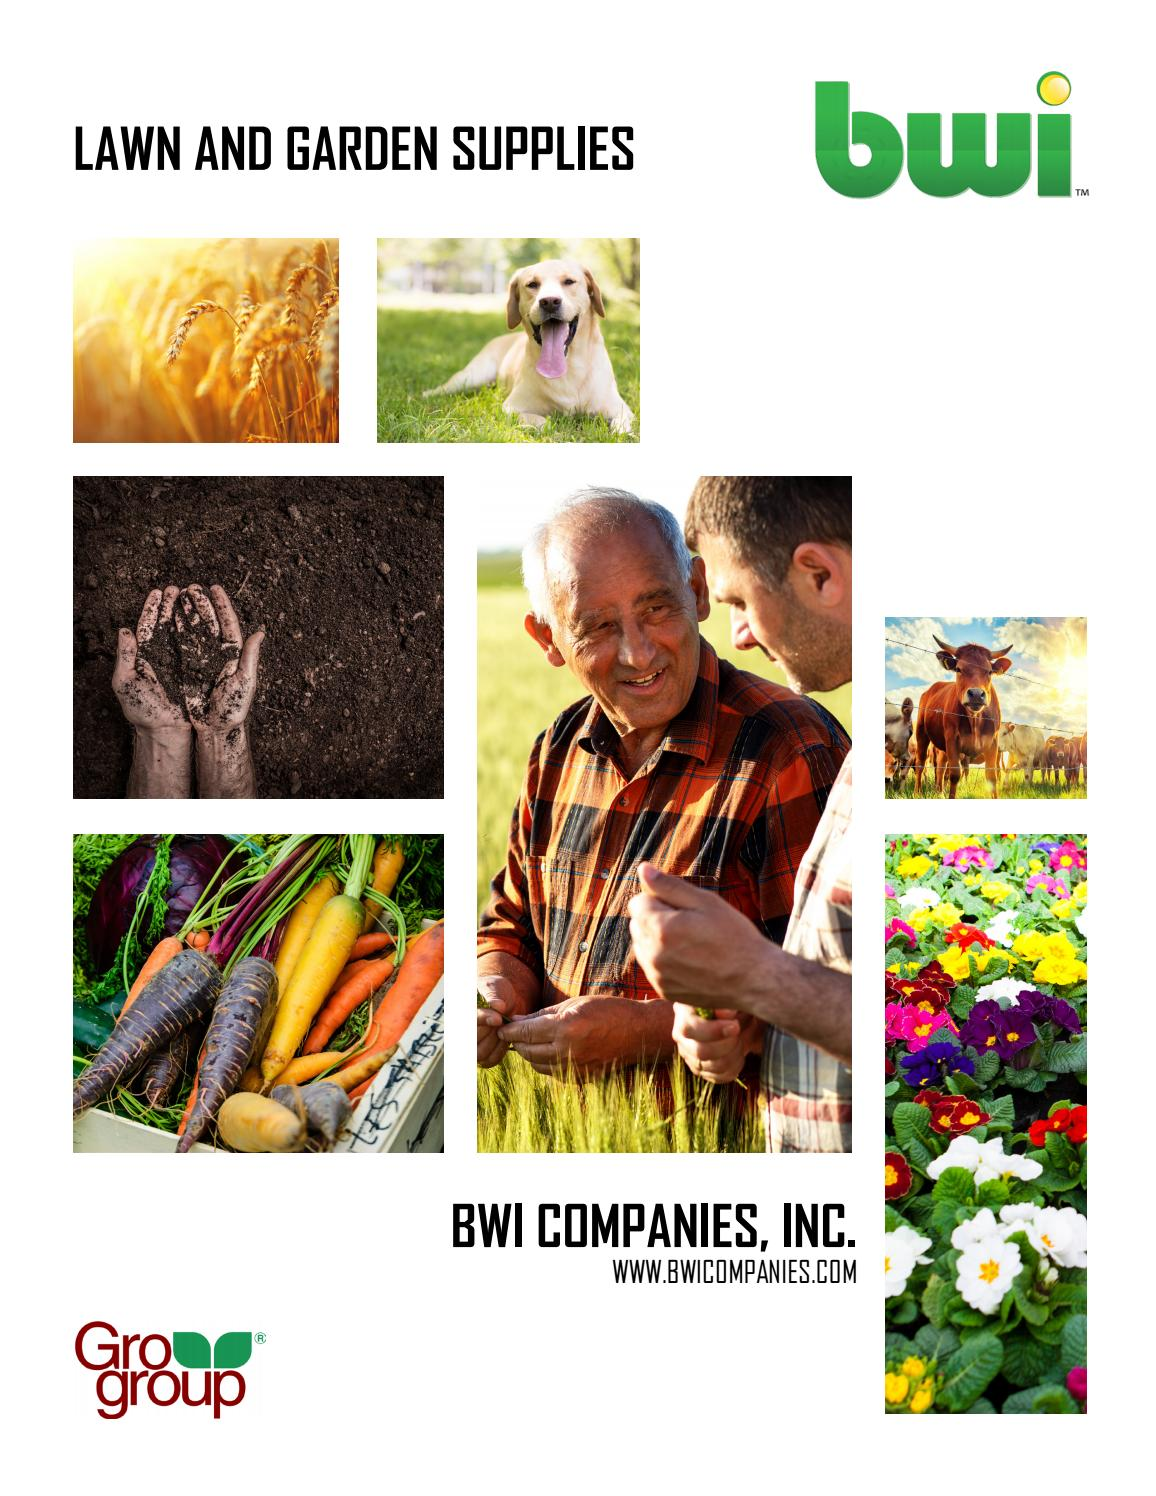 BWI Lawn & Garden Supplies by BWI Companies, Inc  - issuu